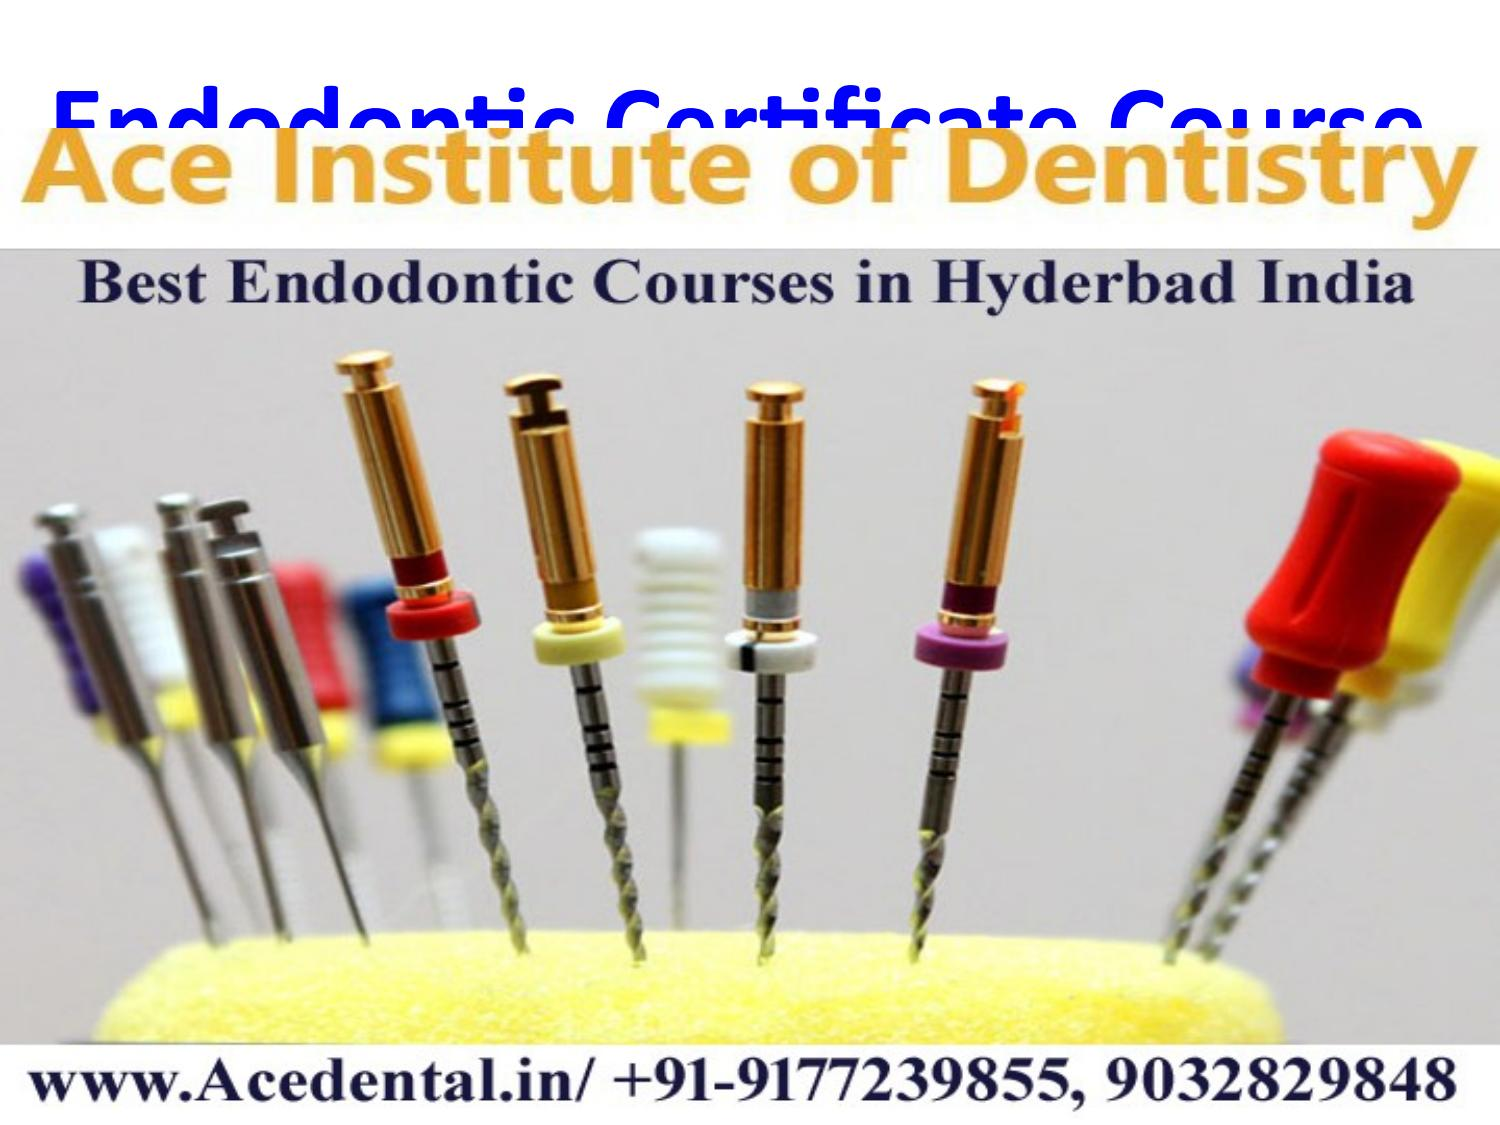 Rotary Endodontics Course and advanced Endodontic Courses in India